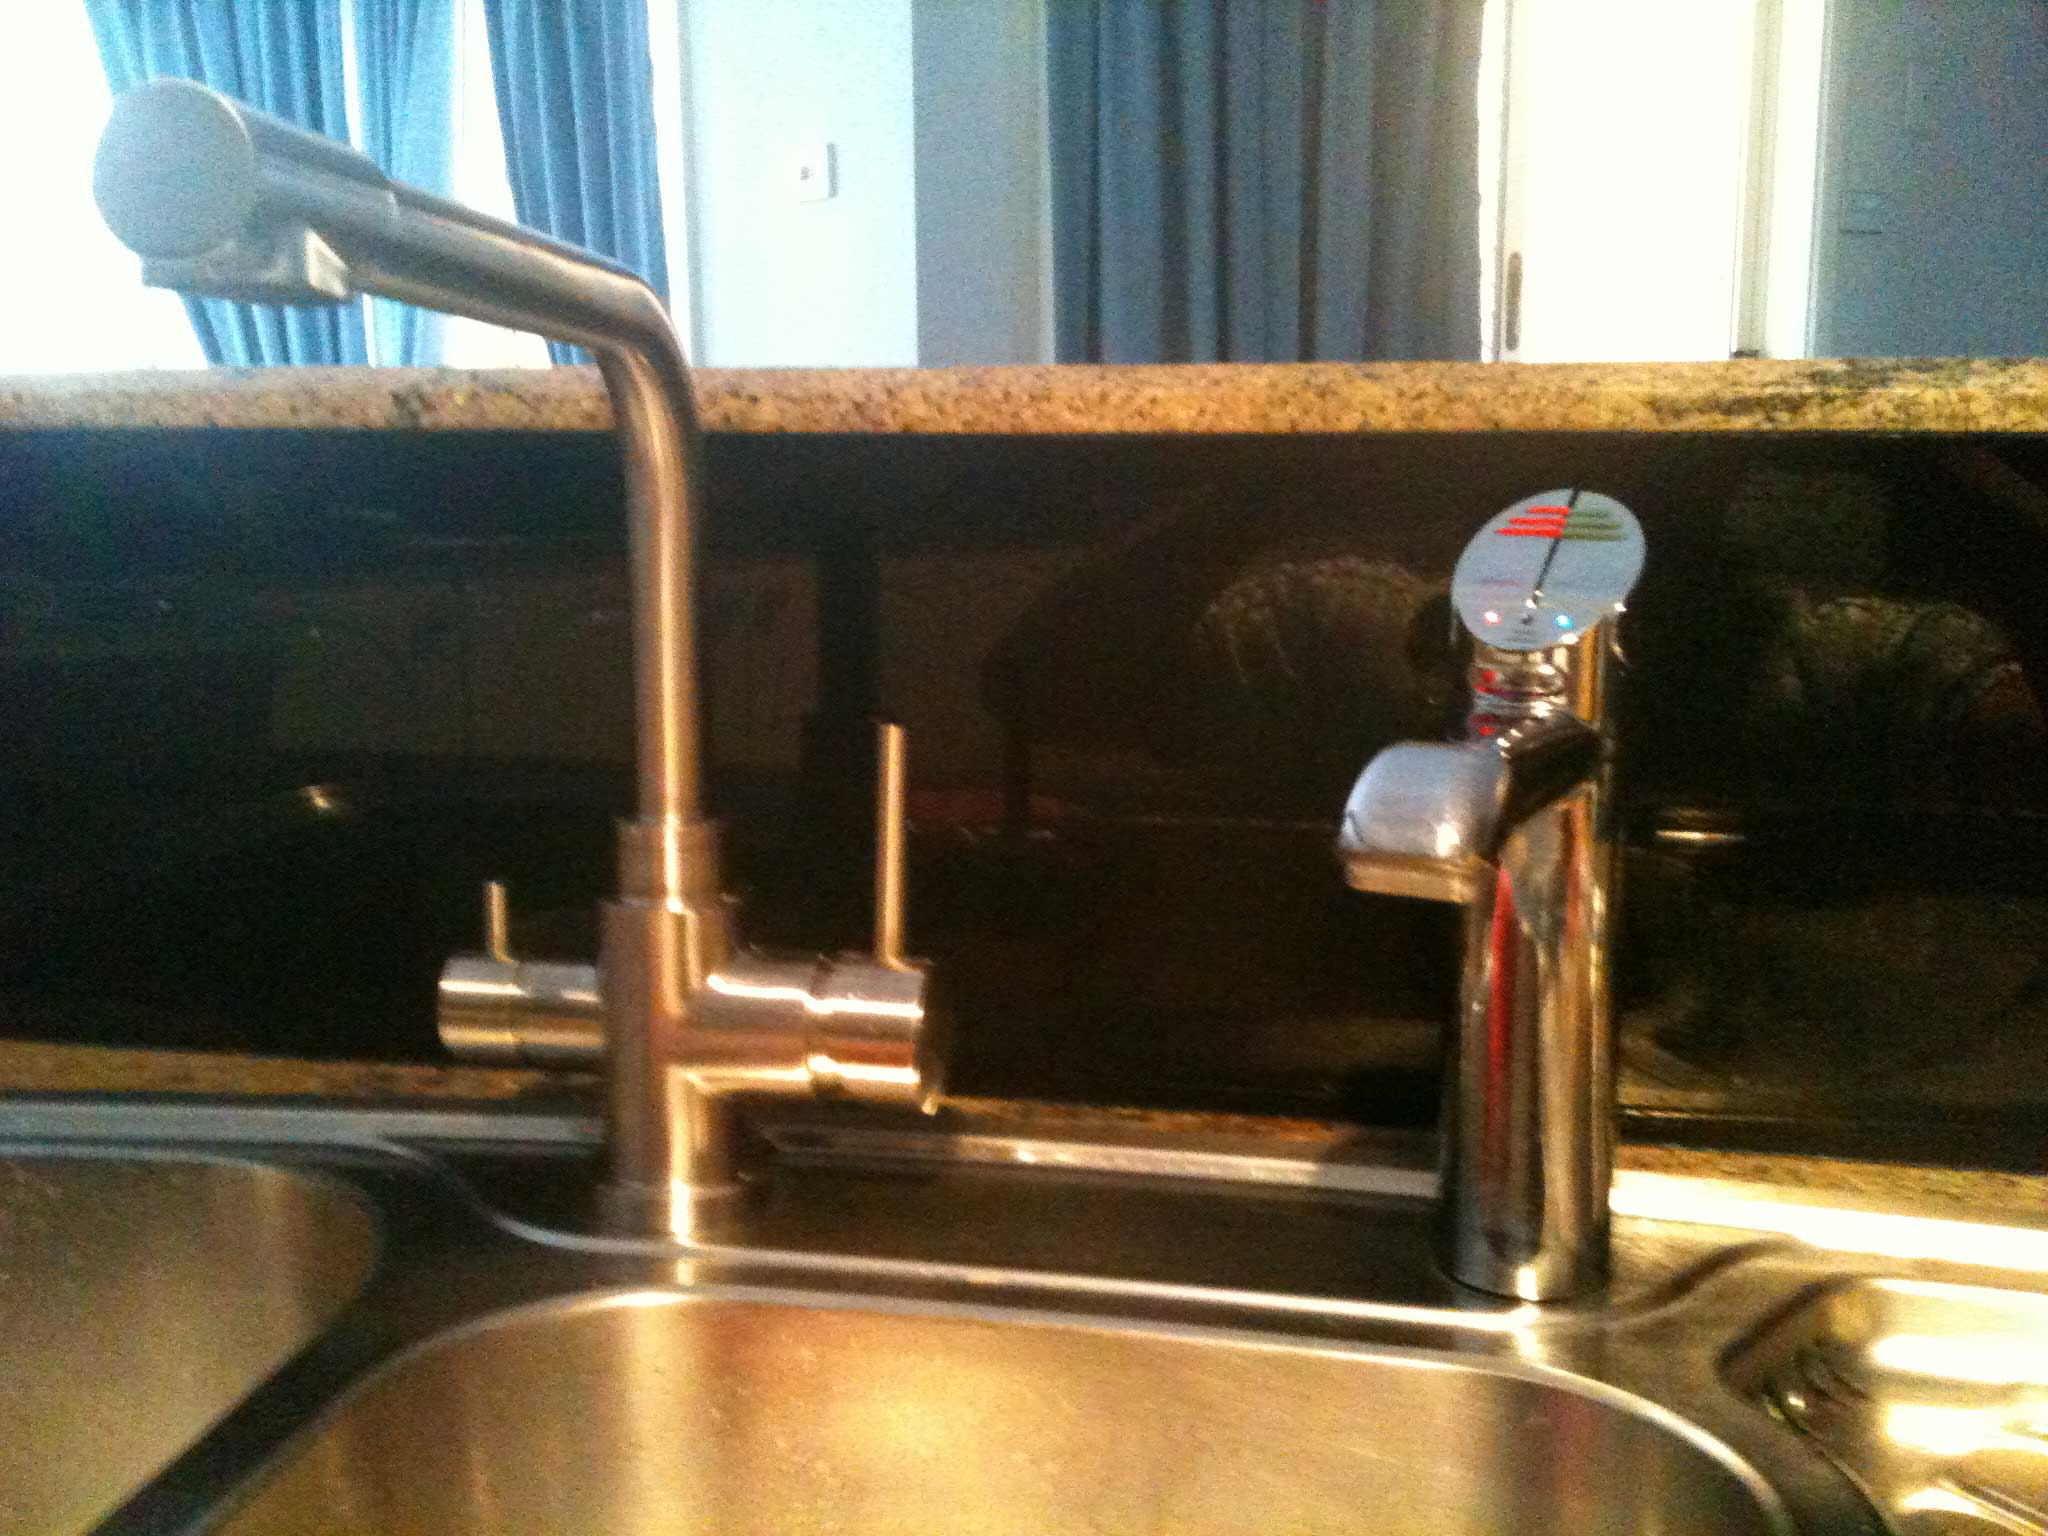 Stainless Steel Three Way Mixer with ZIP Hydrotap installed on kitchen sink